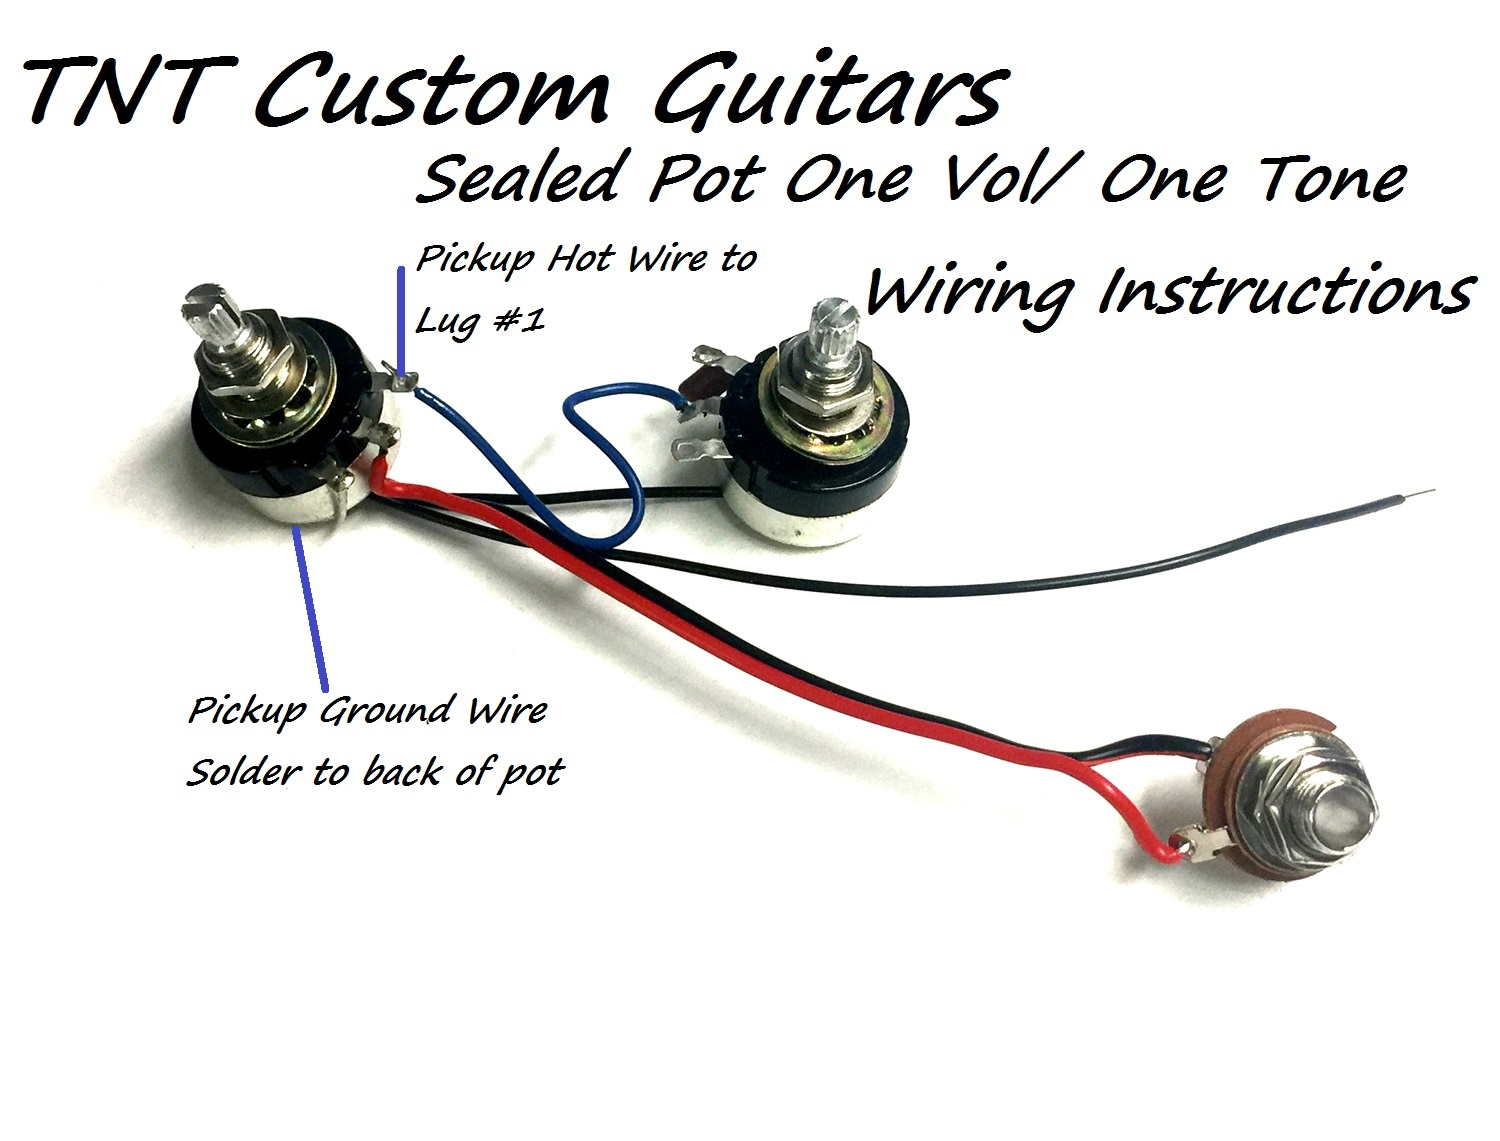 1v1t One Pickup Wiring Harness Sealed Pots Prewired Hot Guitar Pickups